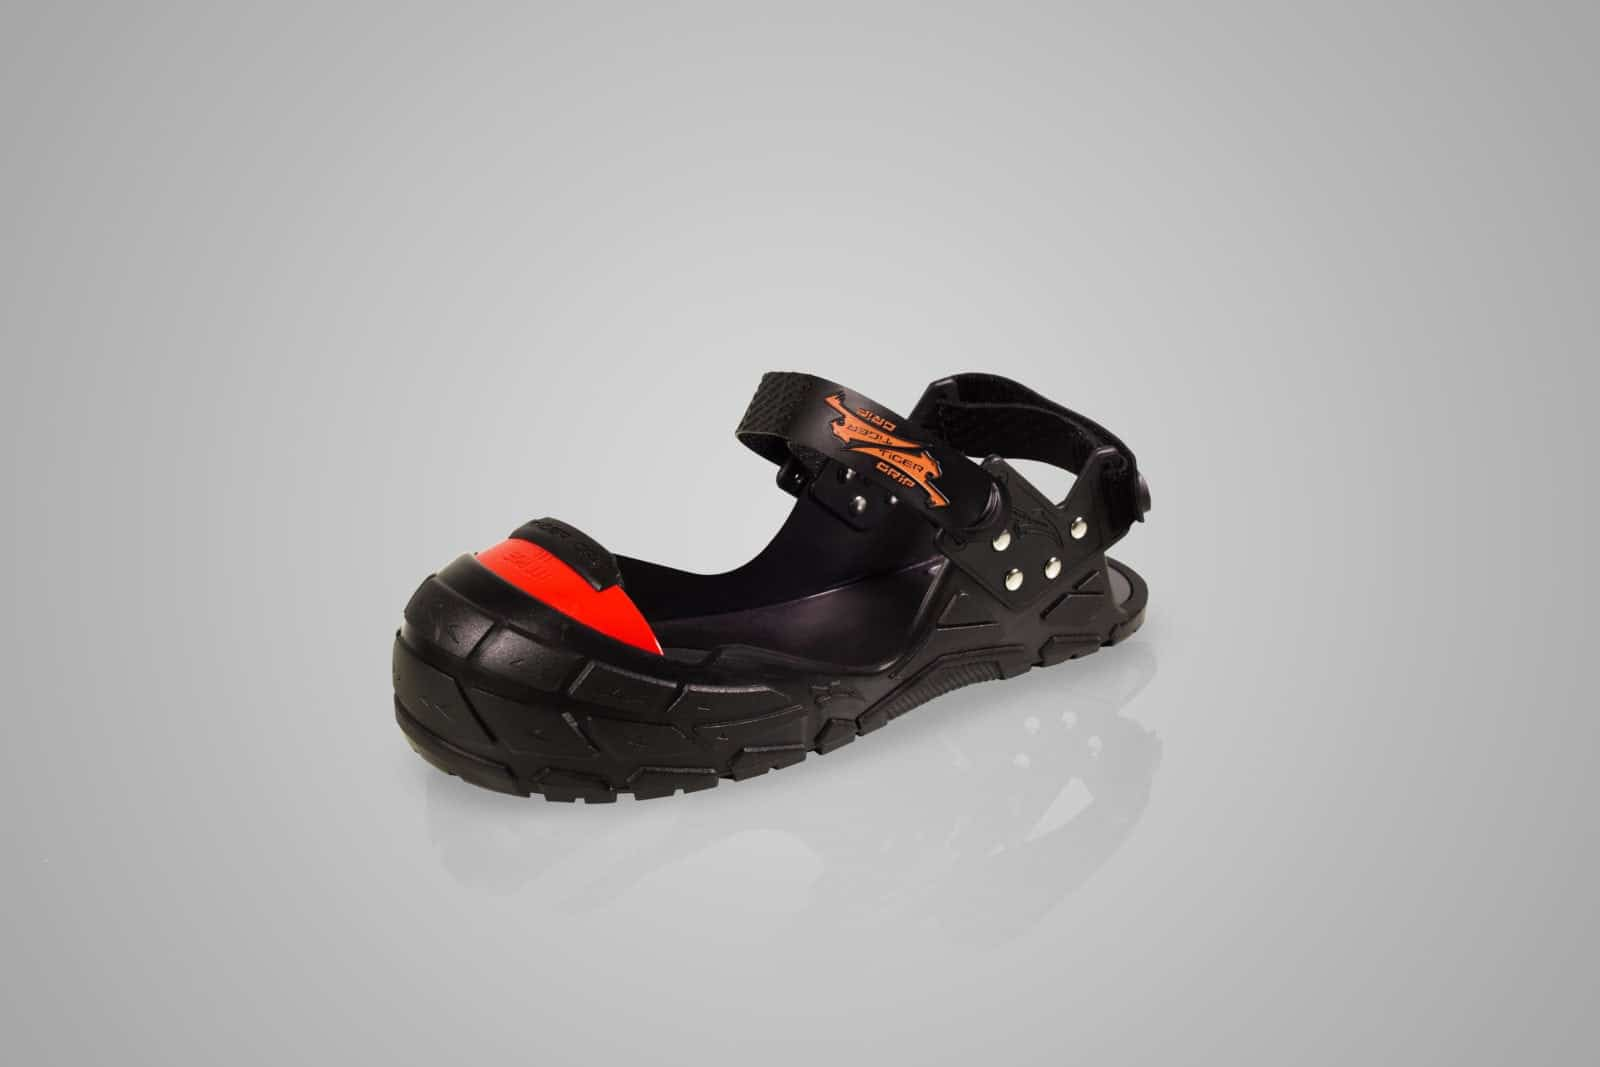 4573068606f Visitor Premium - SAFETY OVERSHOES WITH ANTI-SLIP SOLE